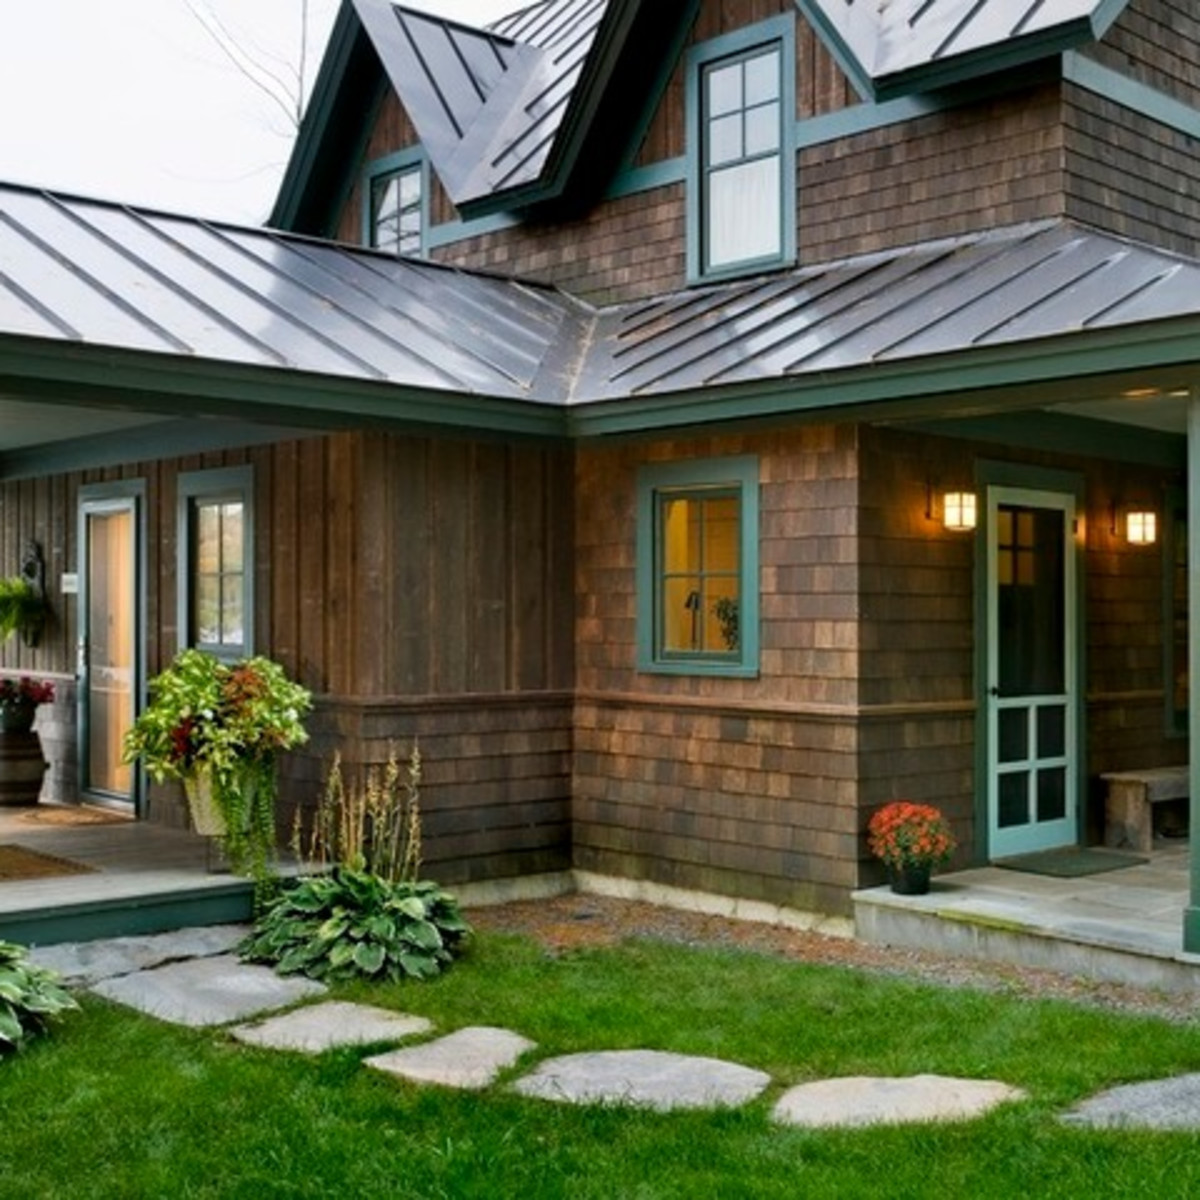 Rustic Lake Homes: 9 Design Tips To Add Rustic Charm To Your Home